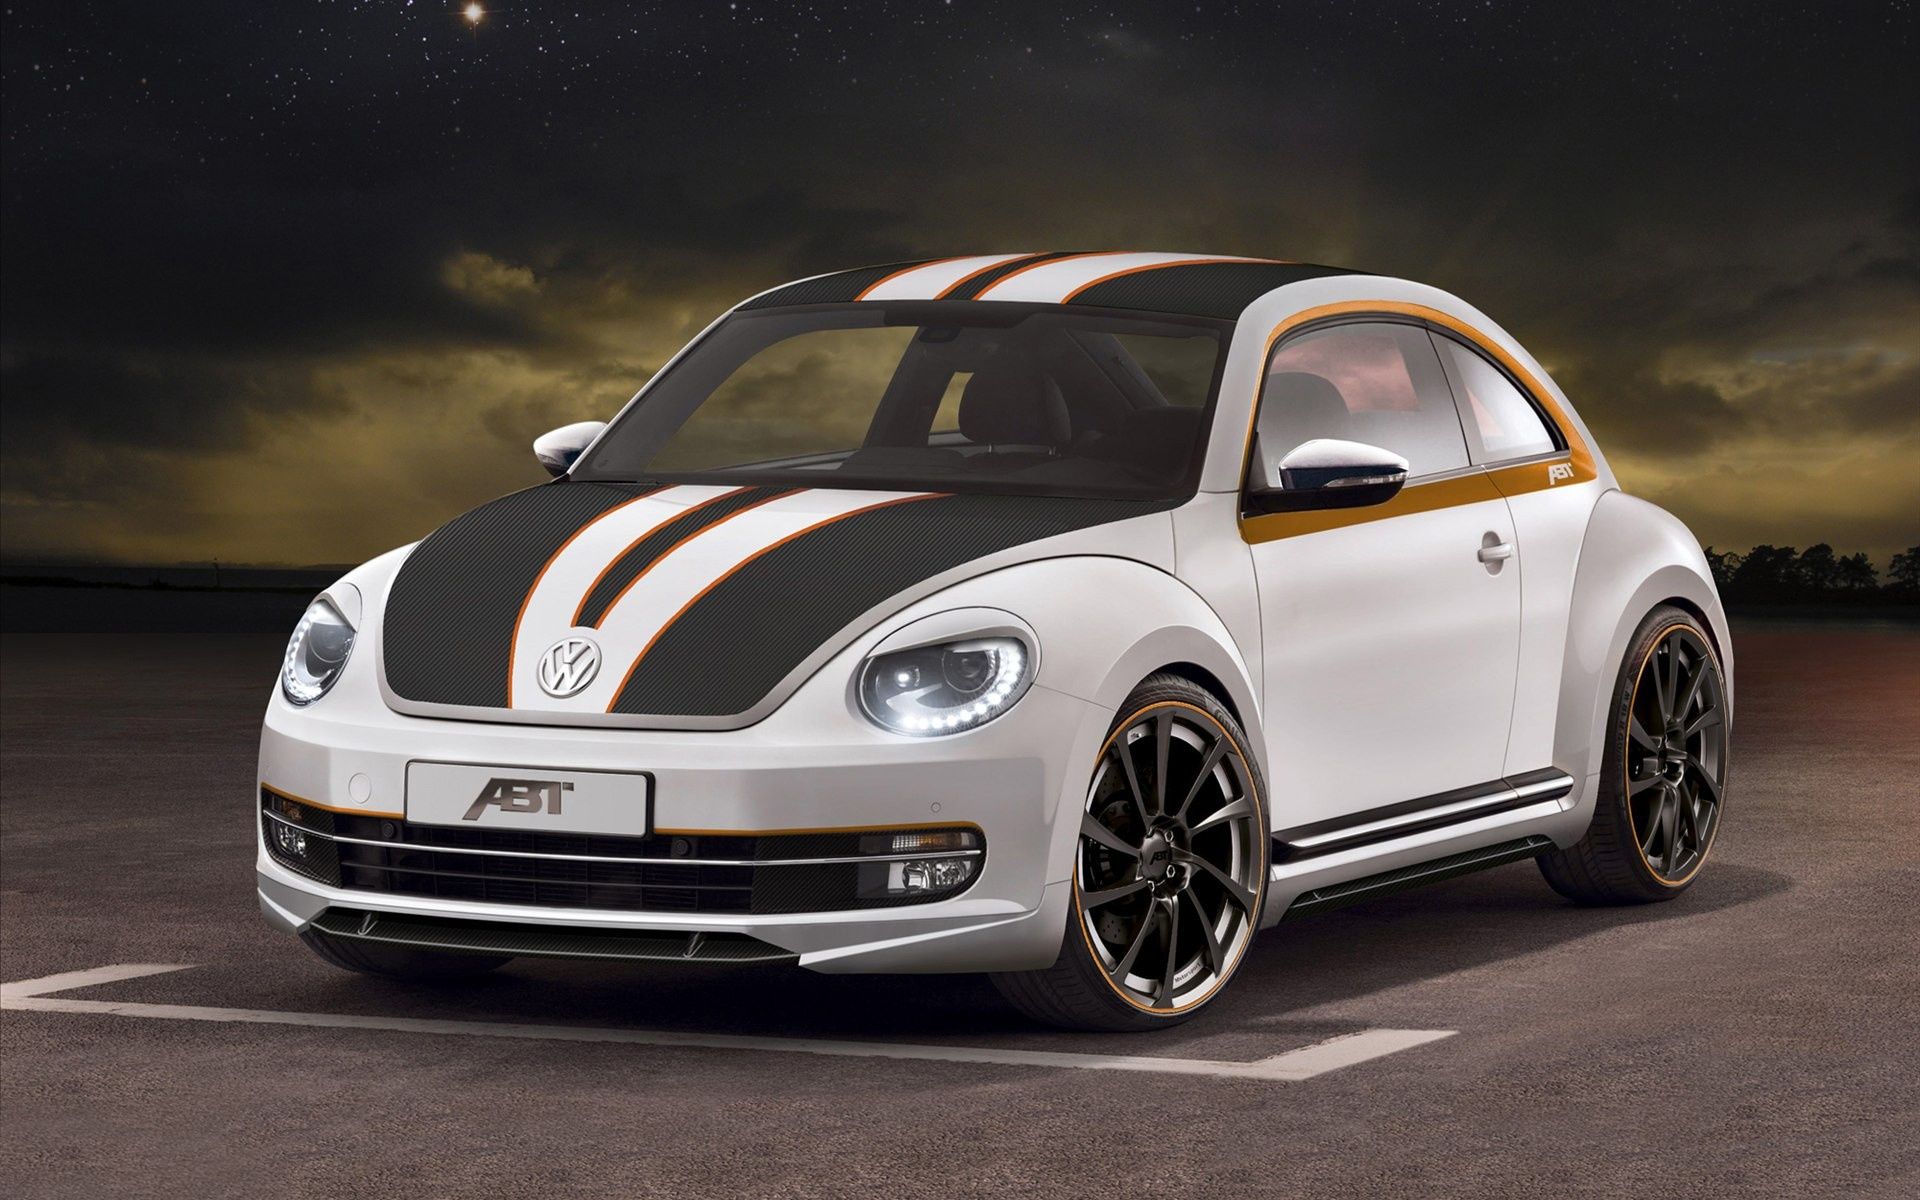 ABT Sportsline Volkswagen Beetle 2012 Wallpaper HD Car Wallpapers 1920x1200